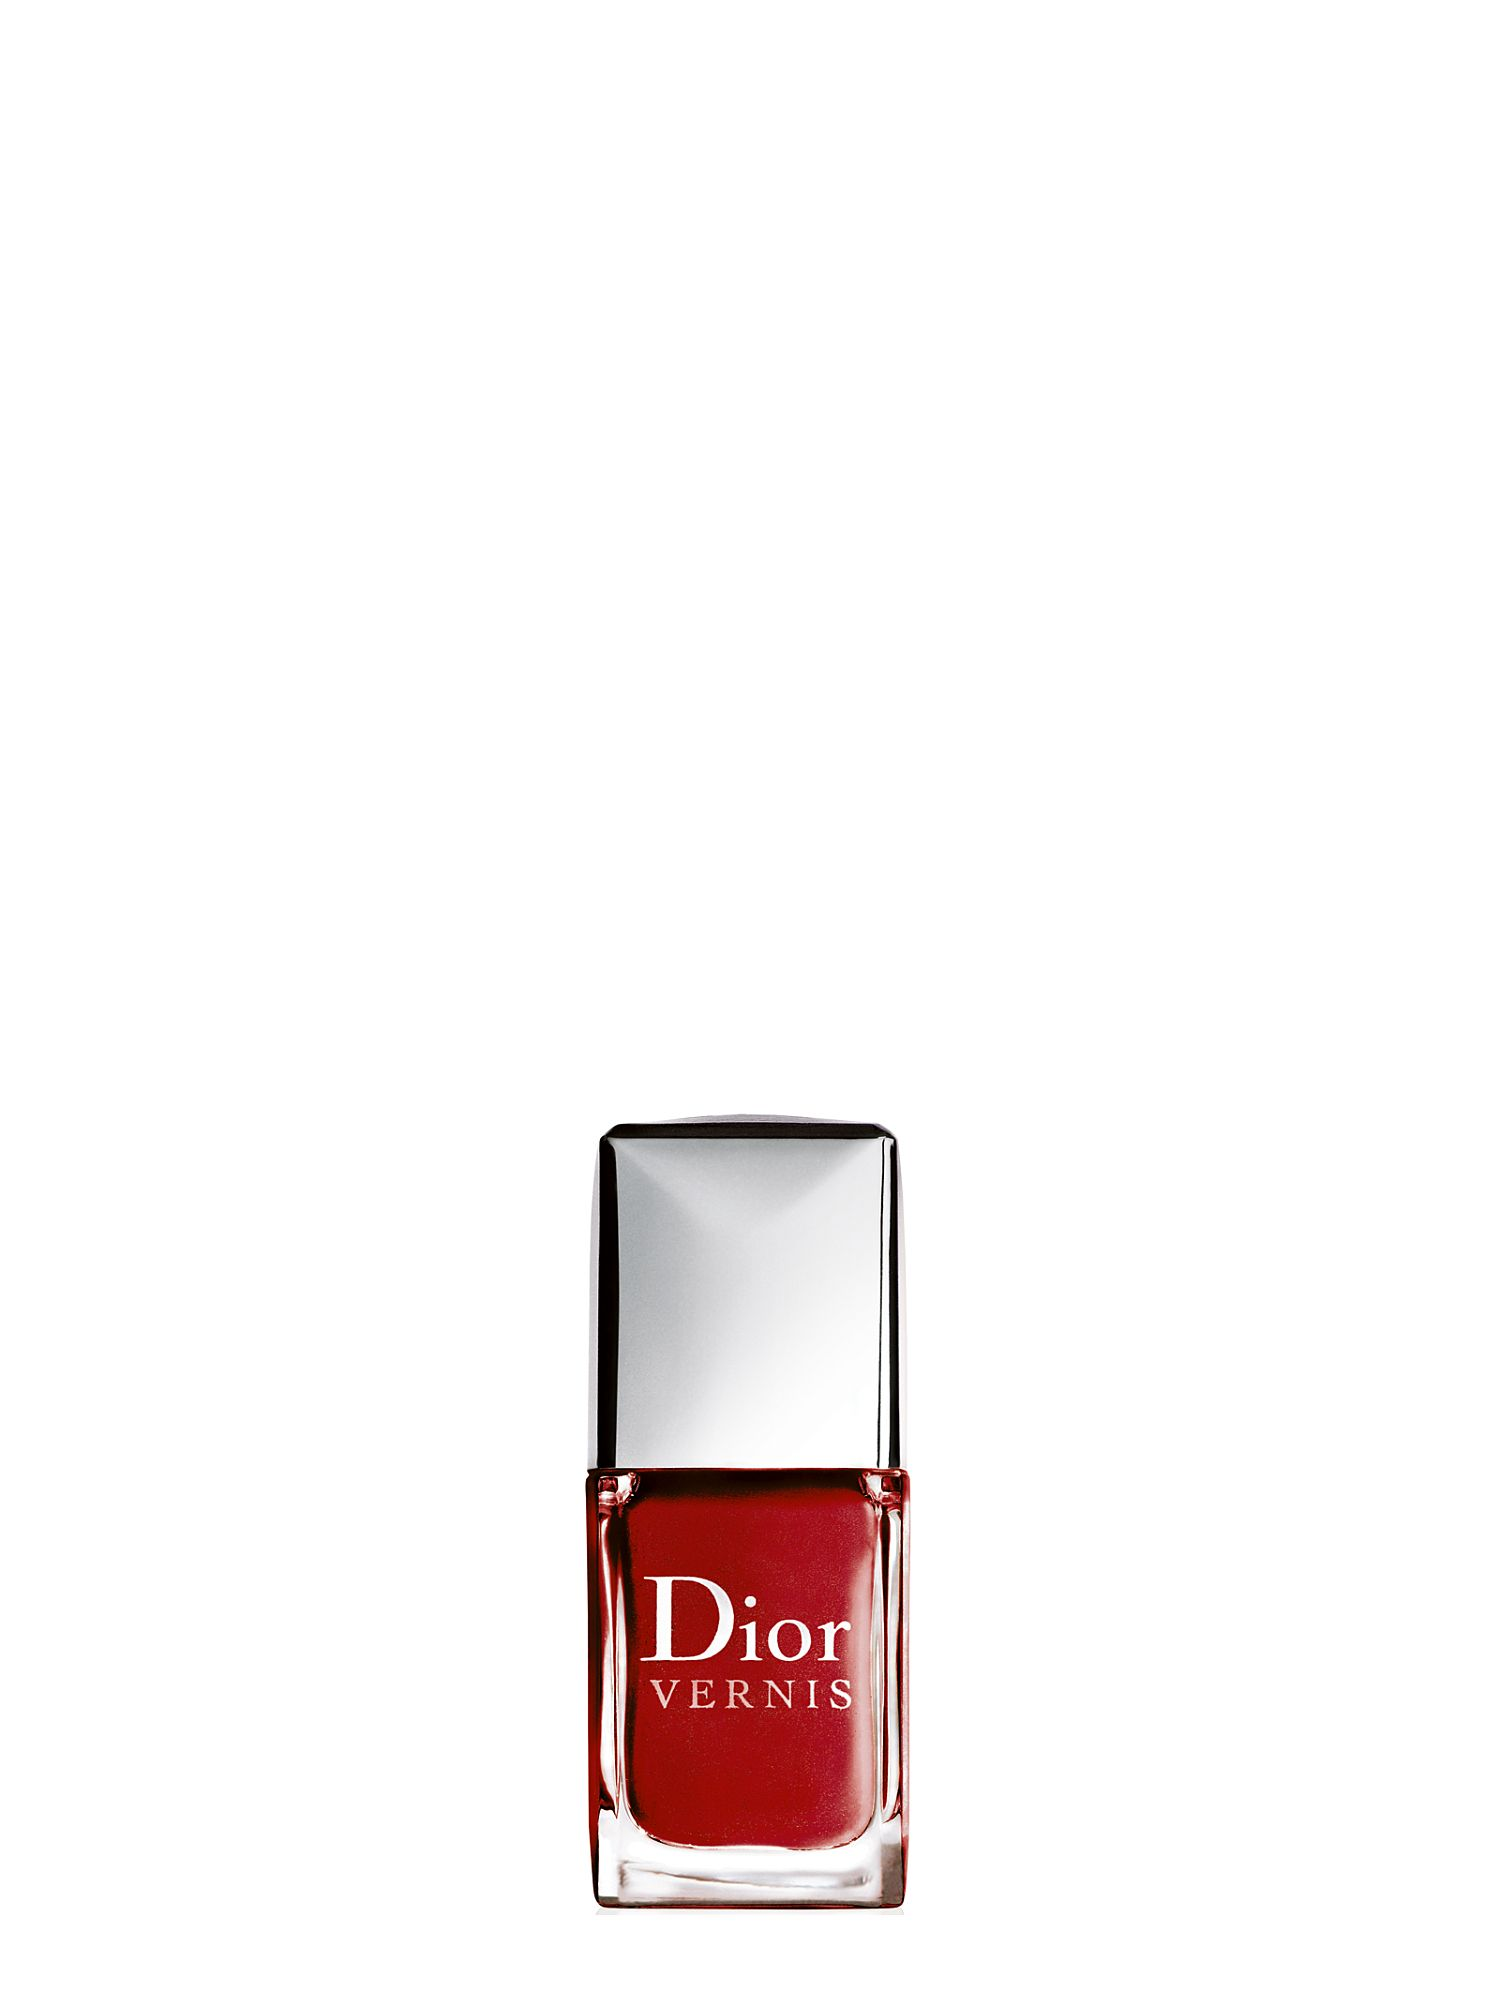 Dior Vernis Long-Wearing Nail Lacquer GOLD NUGGET product image